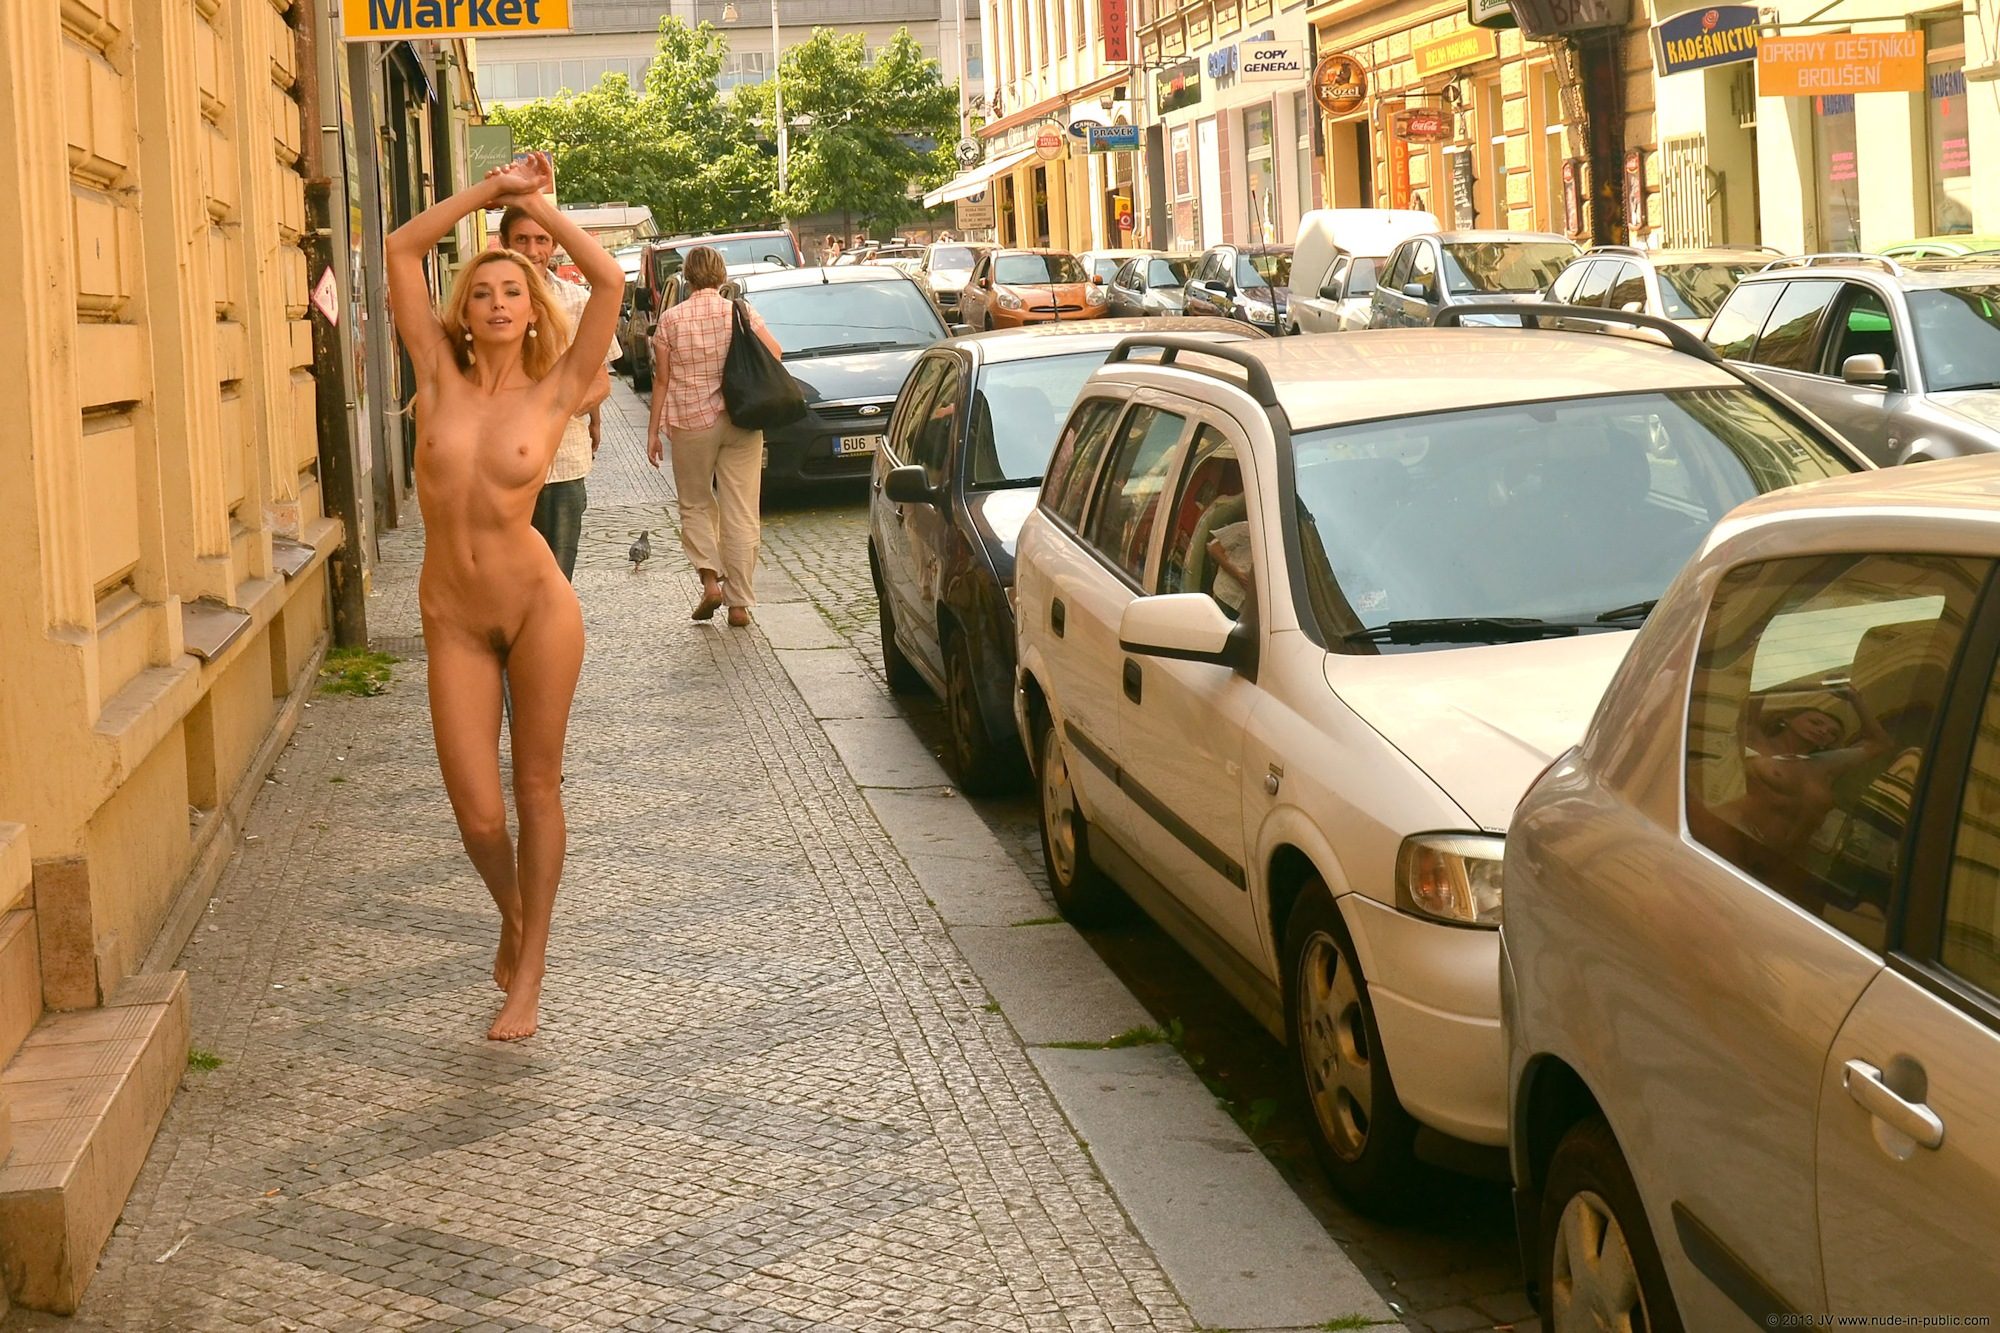 dominika-j-nude-in-public